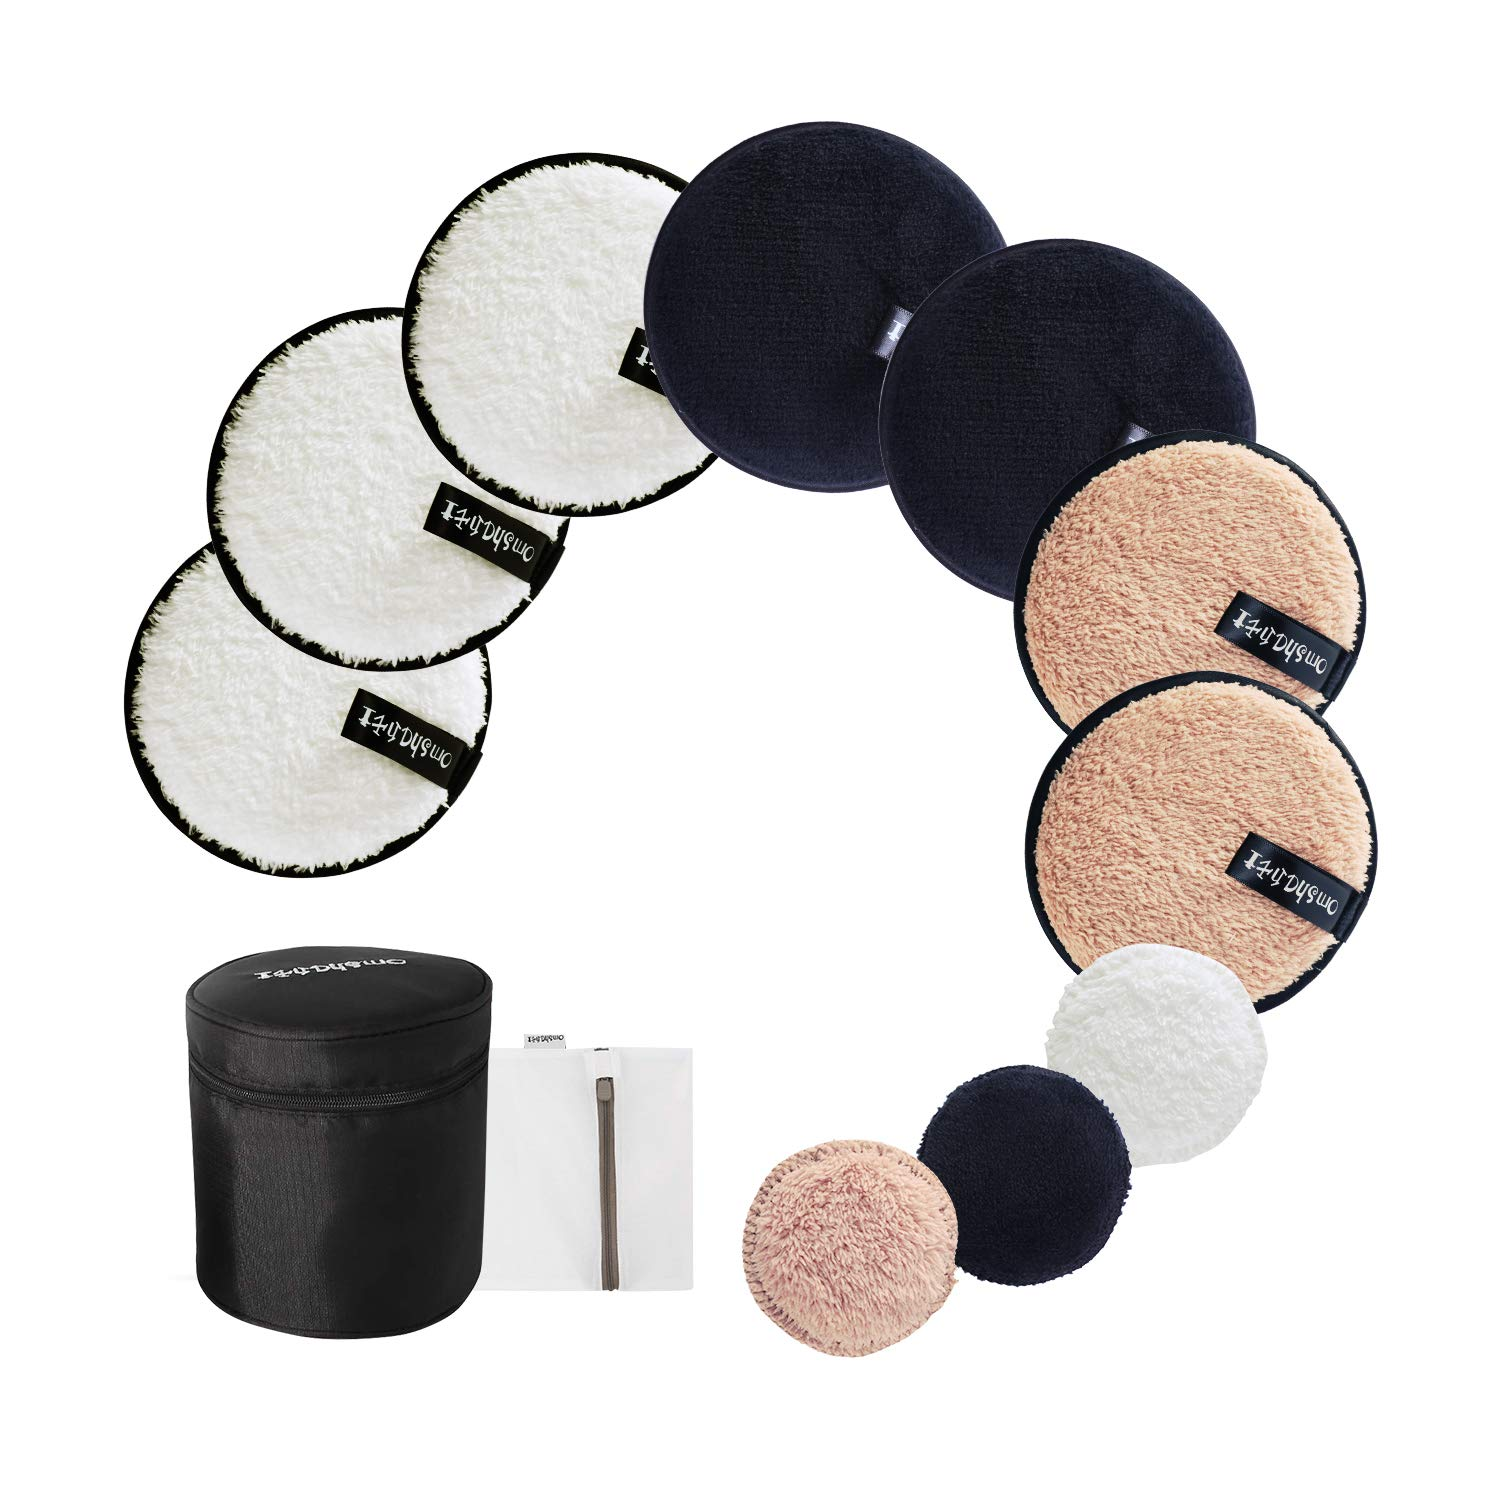 Reusable Makeup Remover Pads: 7-Pack (3.7inch) Coming with Laundry Bag, Travel Bag and 3 Eye Pads - Soft Chemical-free Facial Cotton Pads- Perfect for Facial Cleansing by SolarMatrix